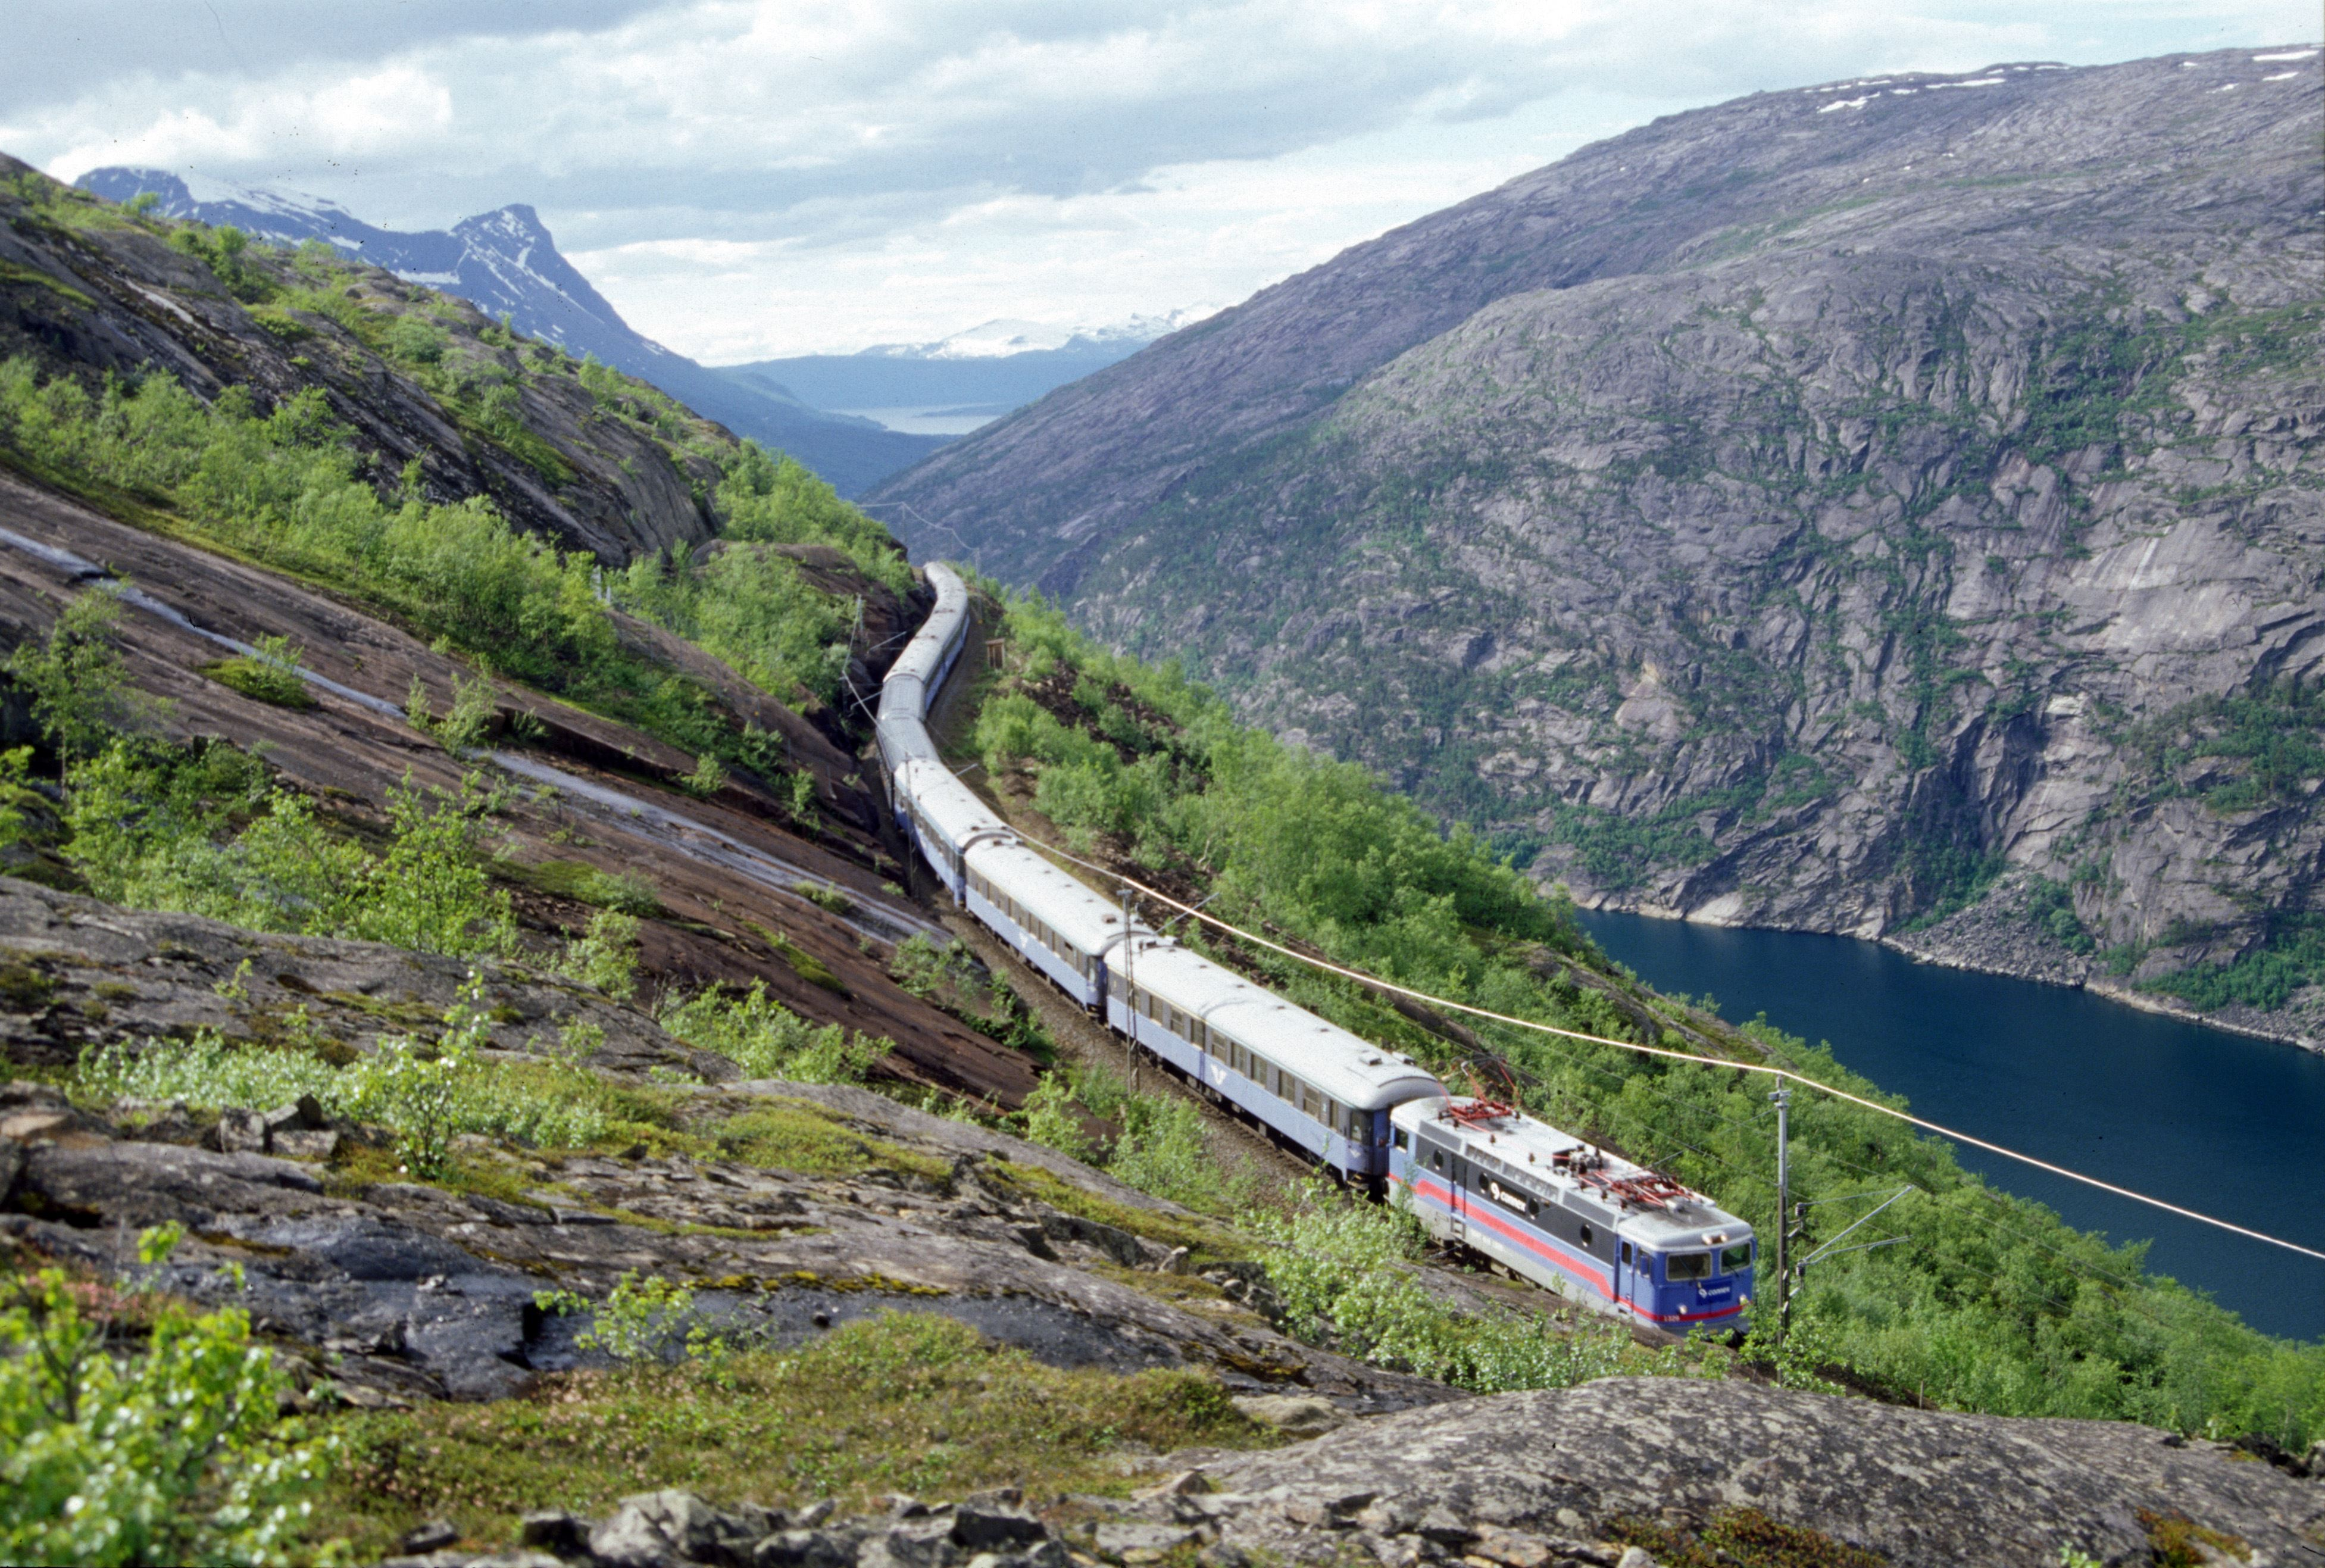 Experience the Ofotbanen Railway and the Navvy Road with a local guide